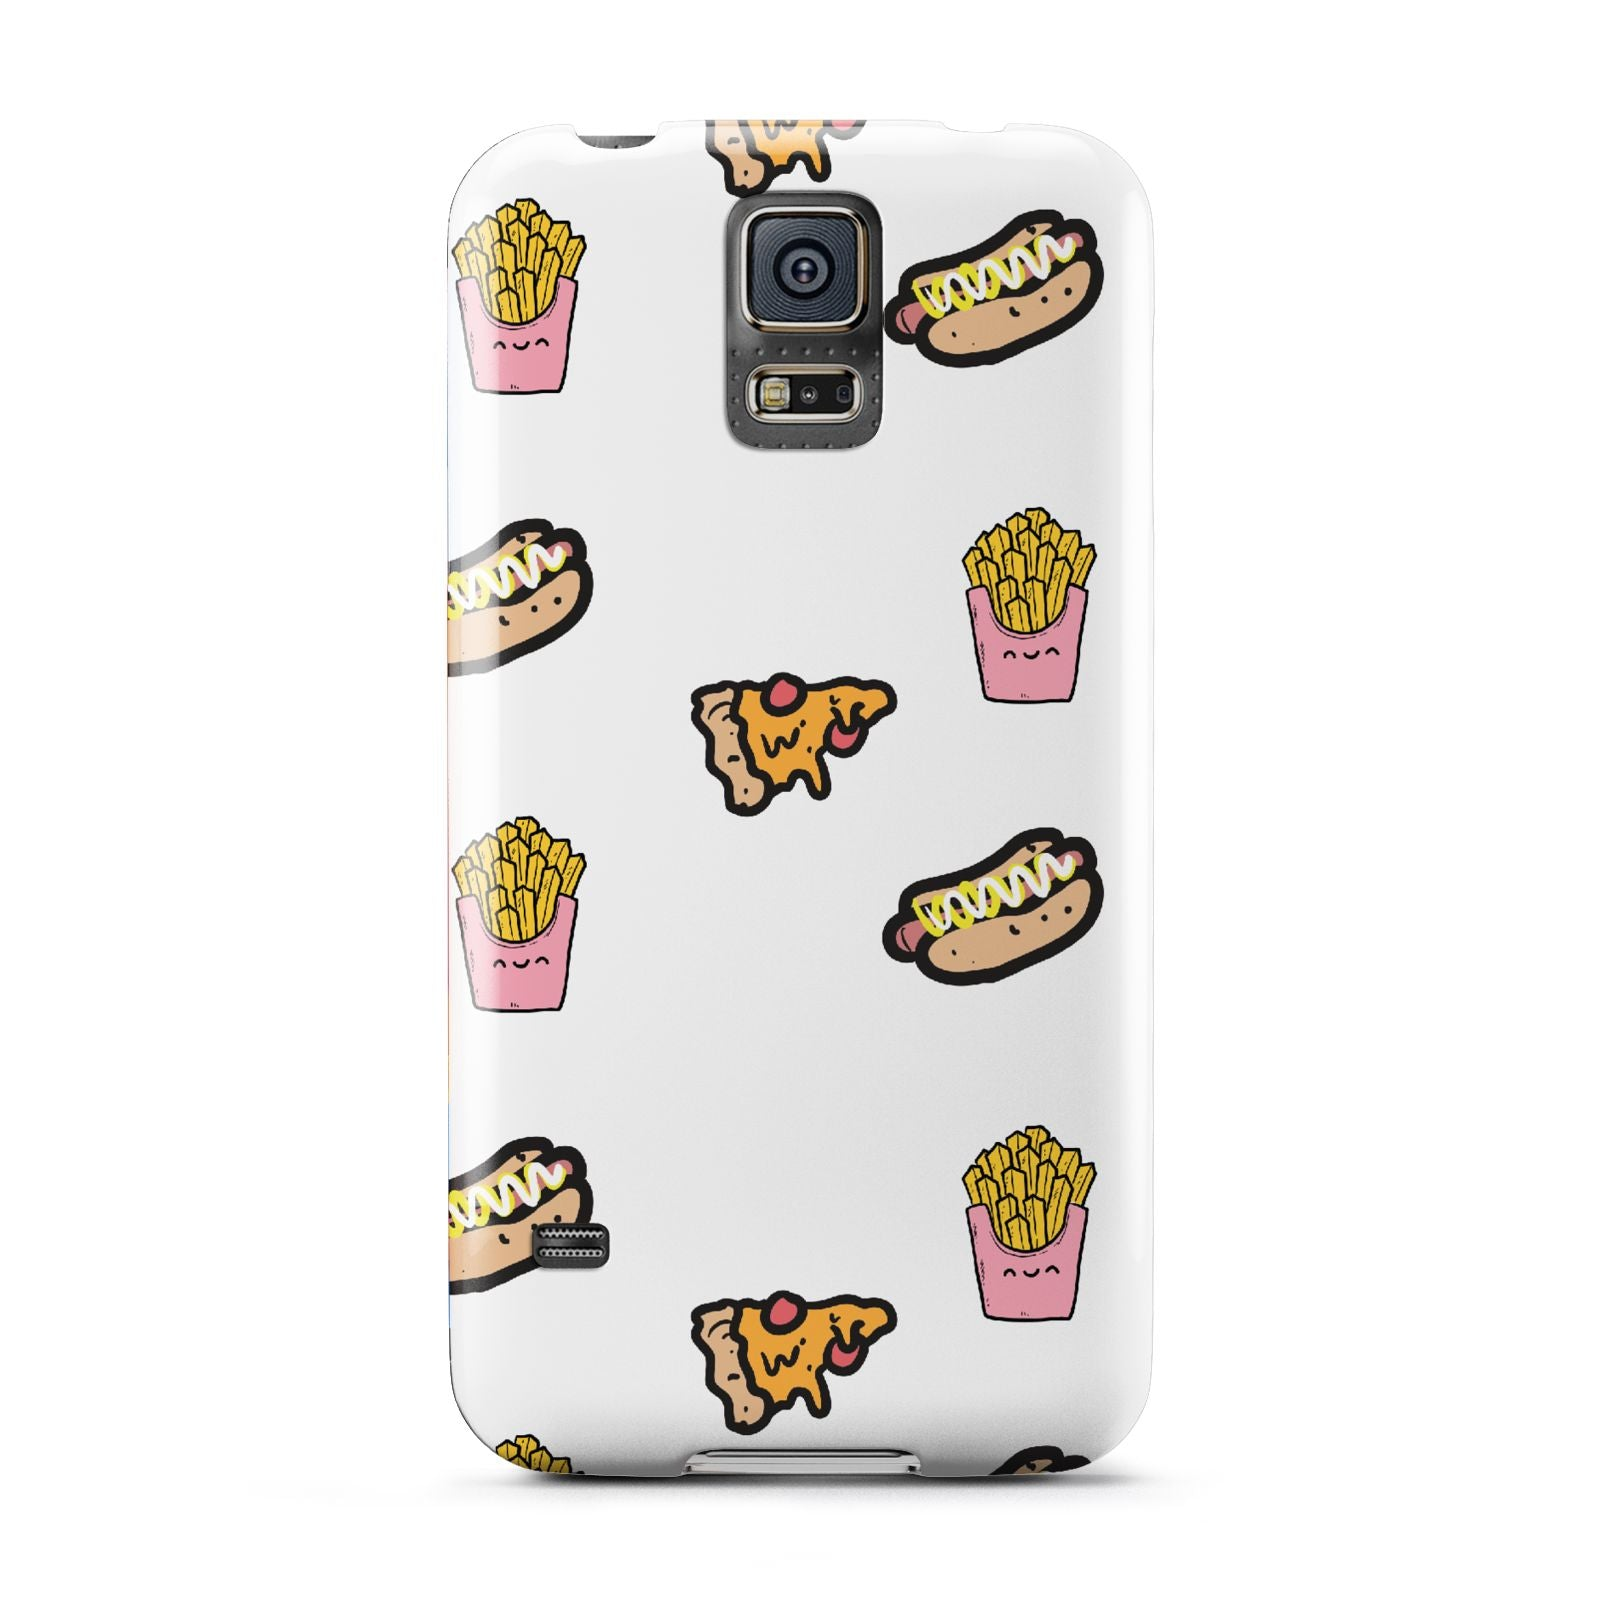 Fries Pizza Hot Dog Samsung Galaxy S5 Case